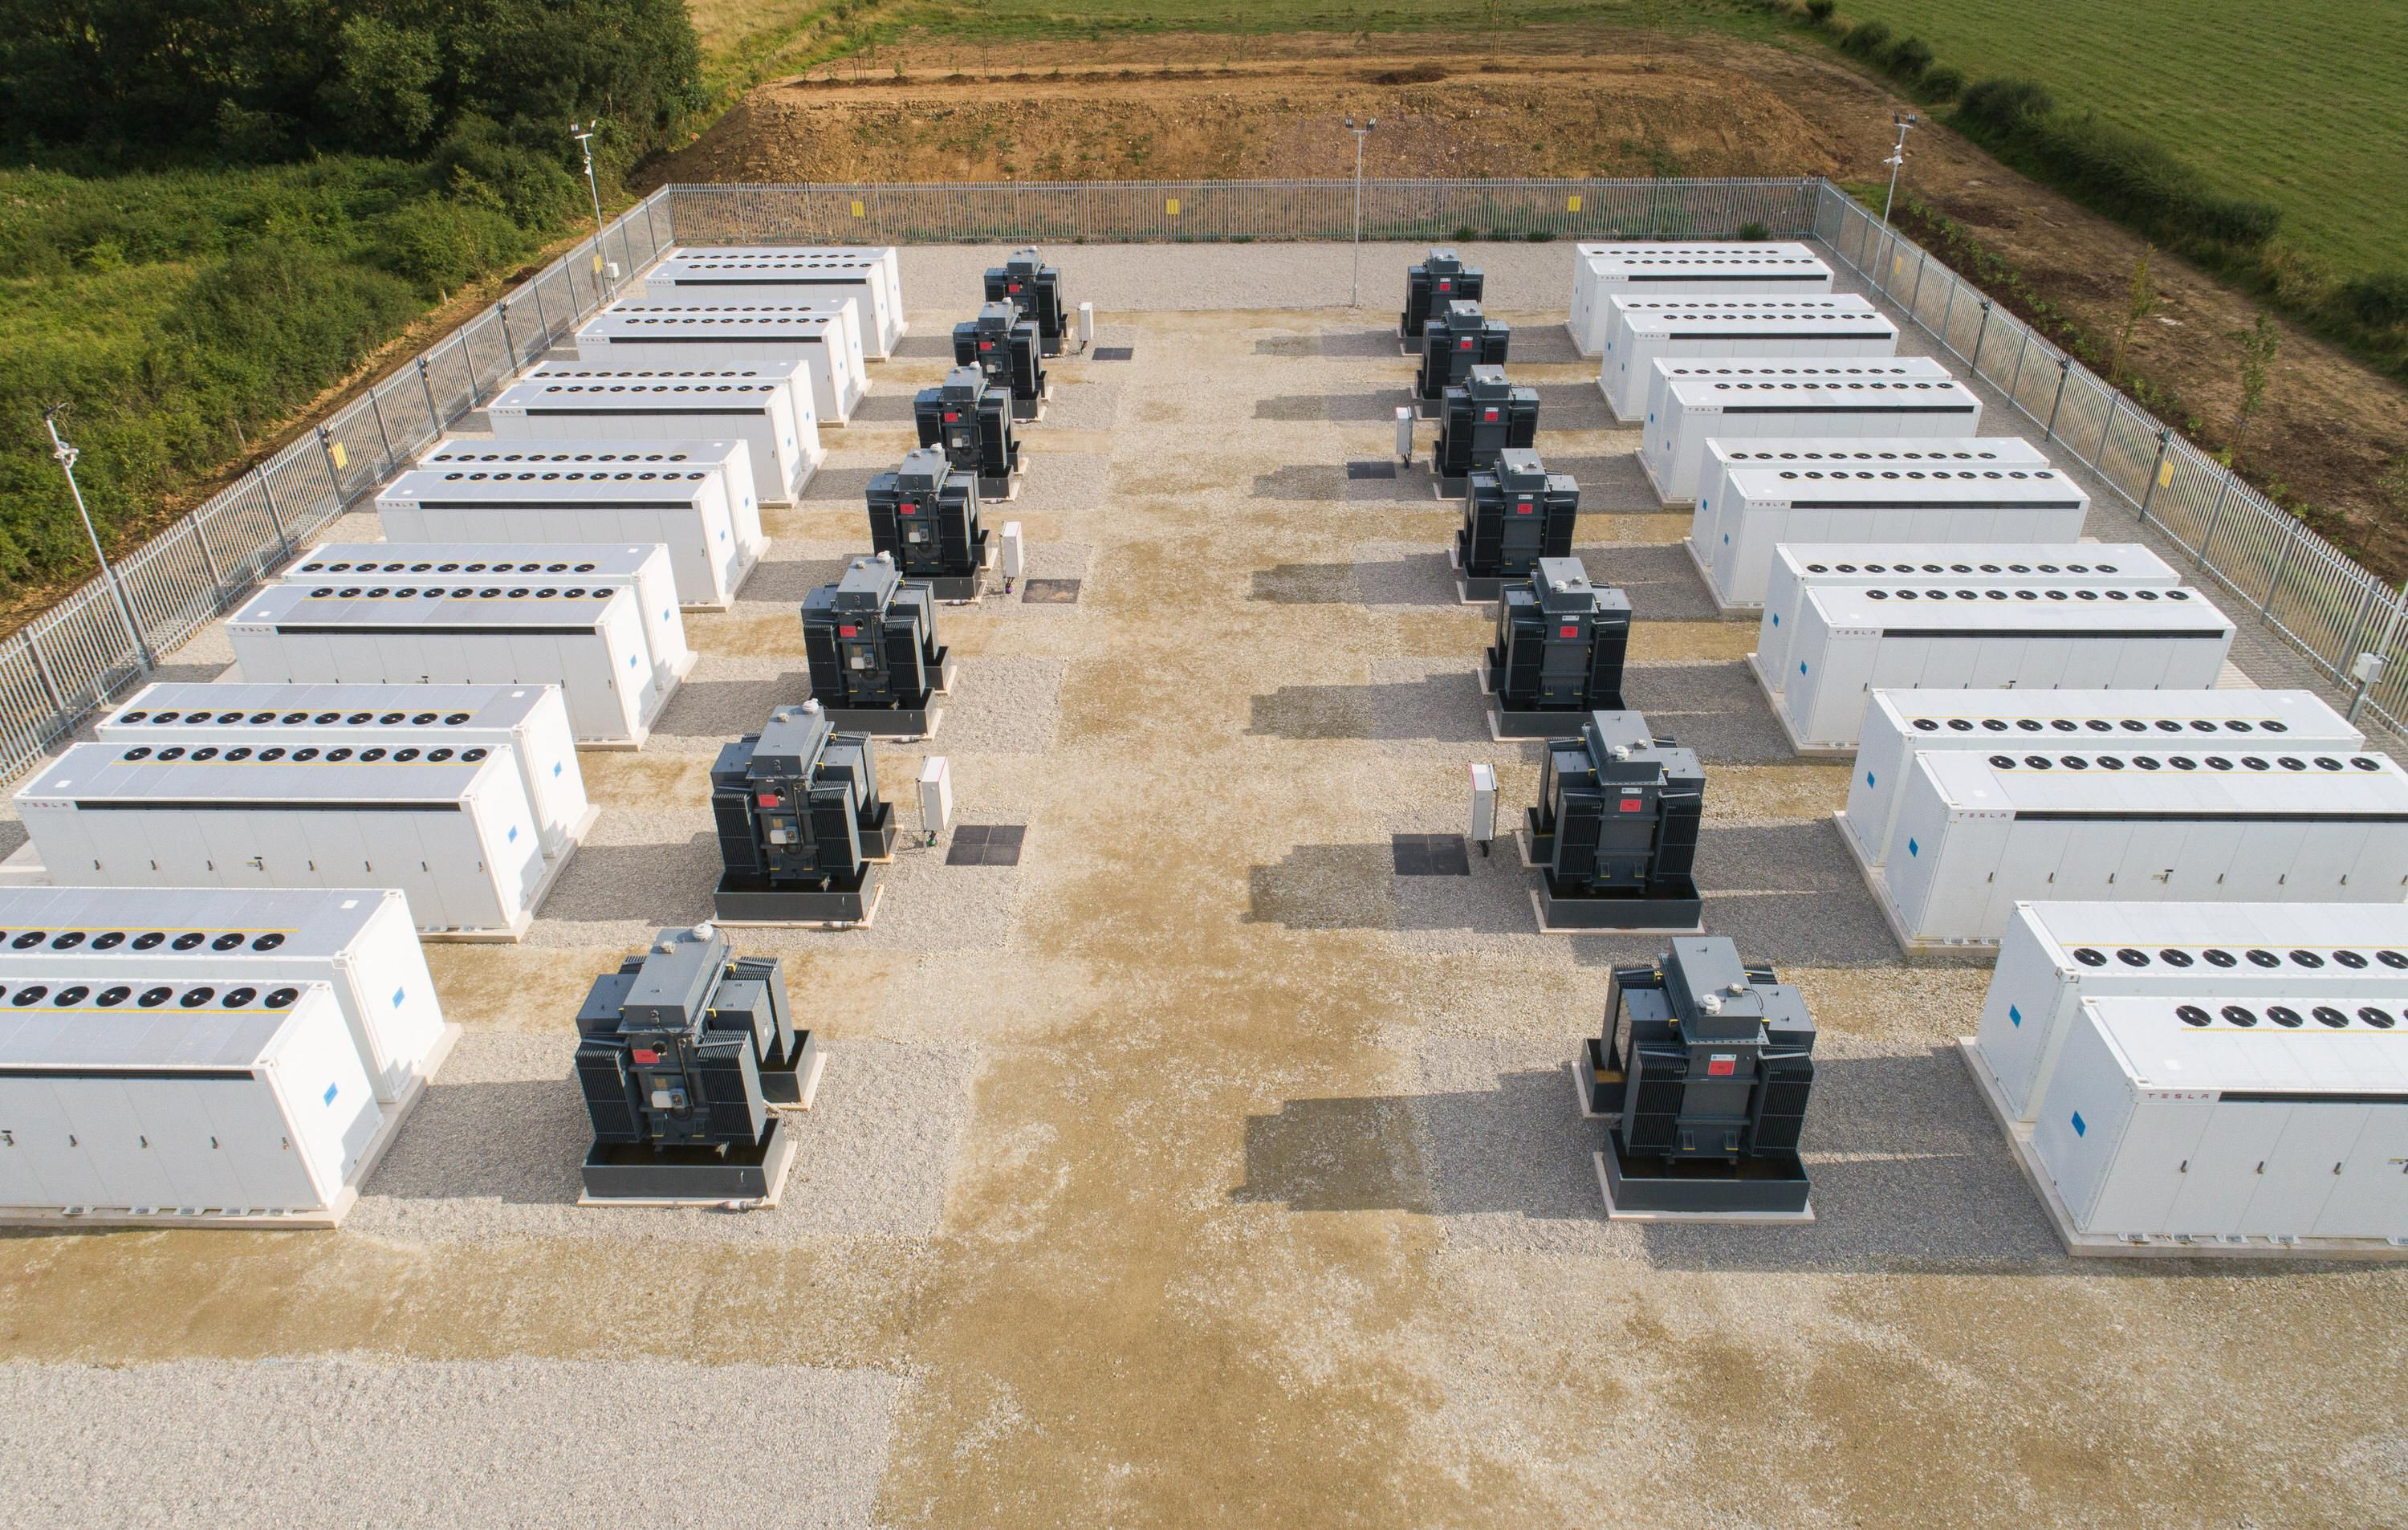 Overhead photo shows 7 large white containers and 7 black and gray large equipment boxes each on the left and right side in a grid.